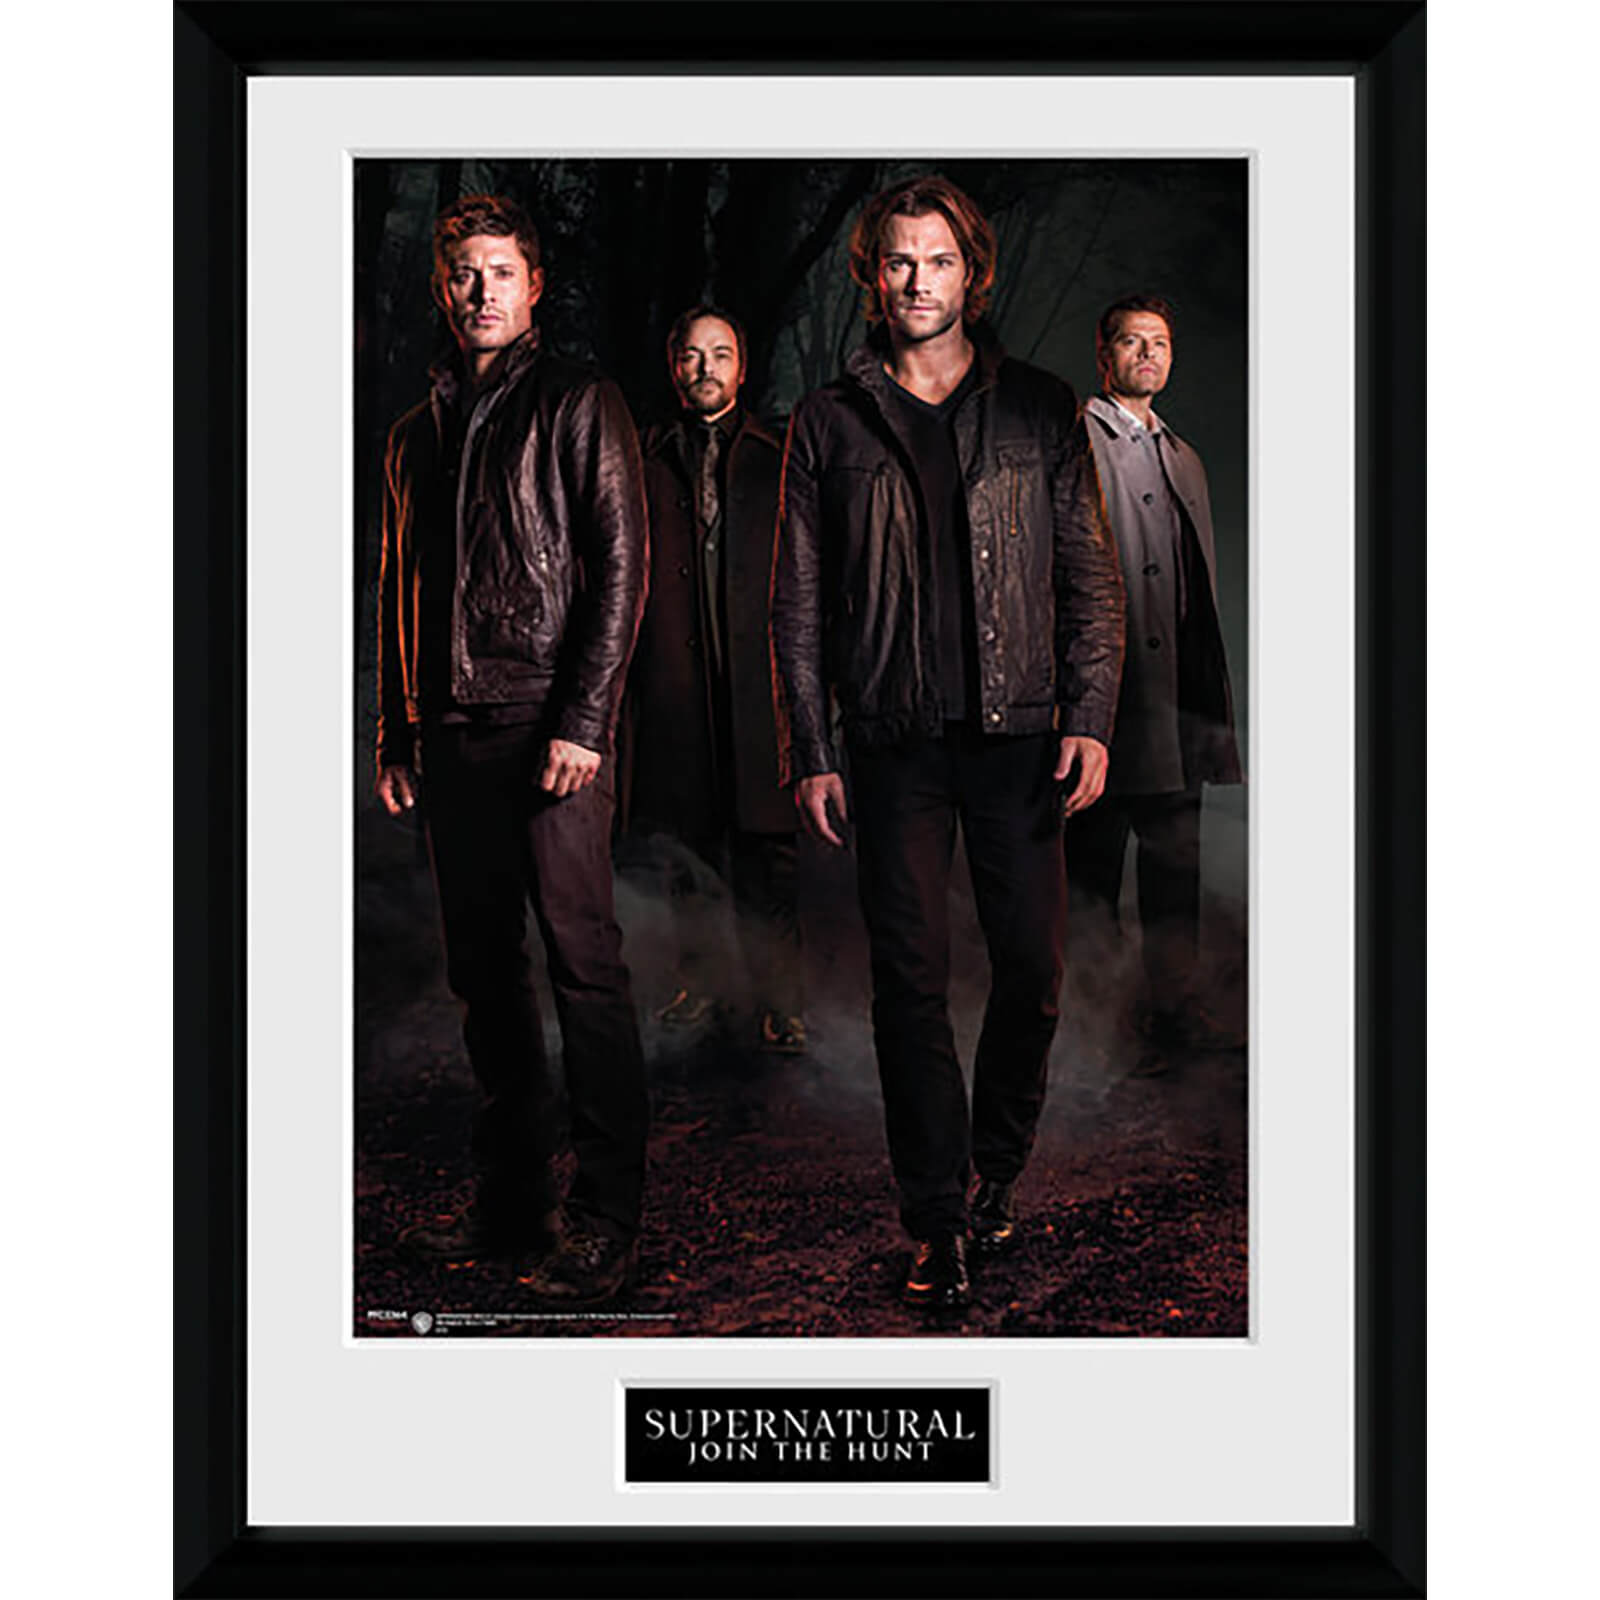 Supernatural Key Art - 16 x 12 Inches Framed Photograph